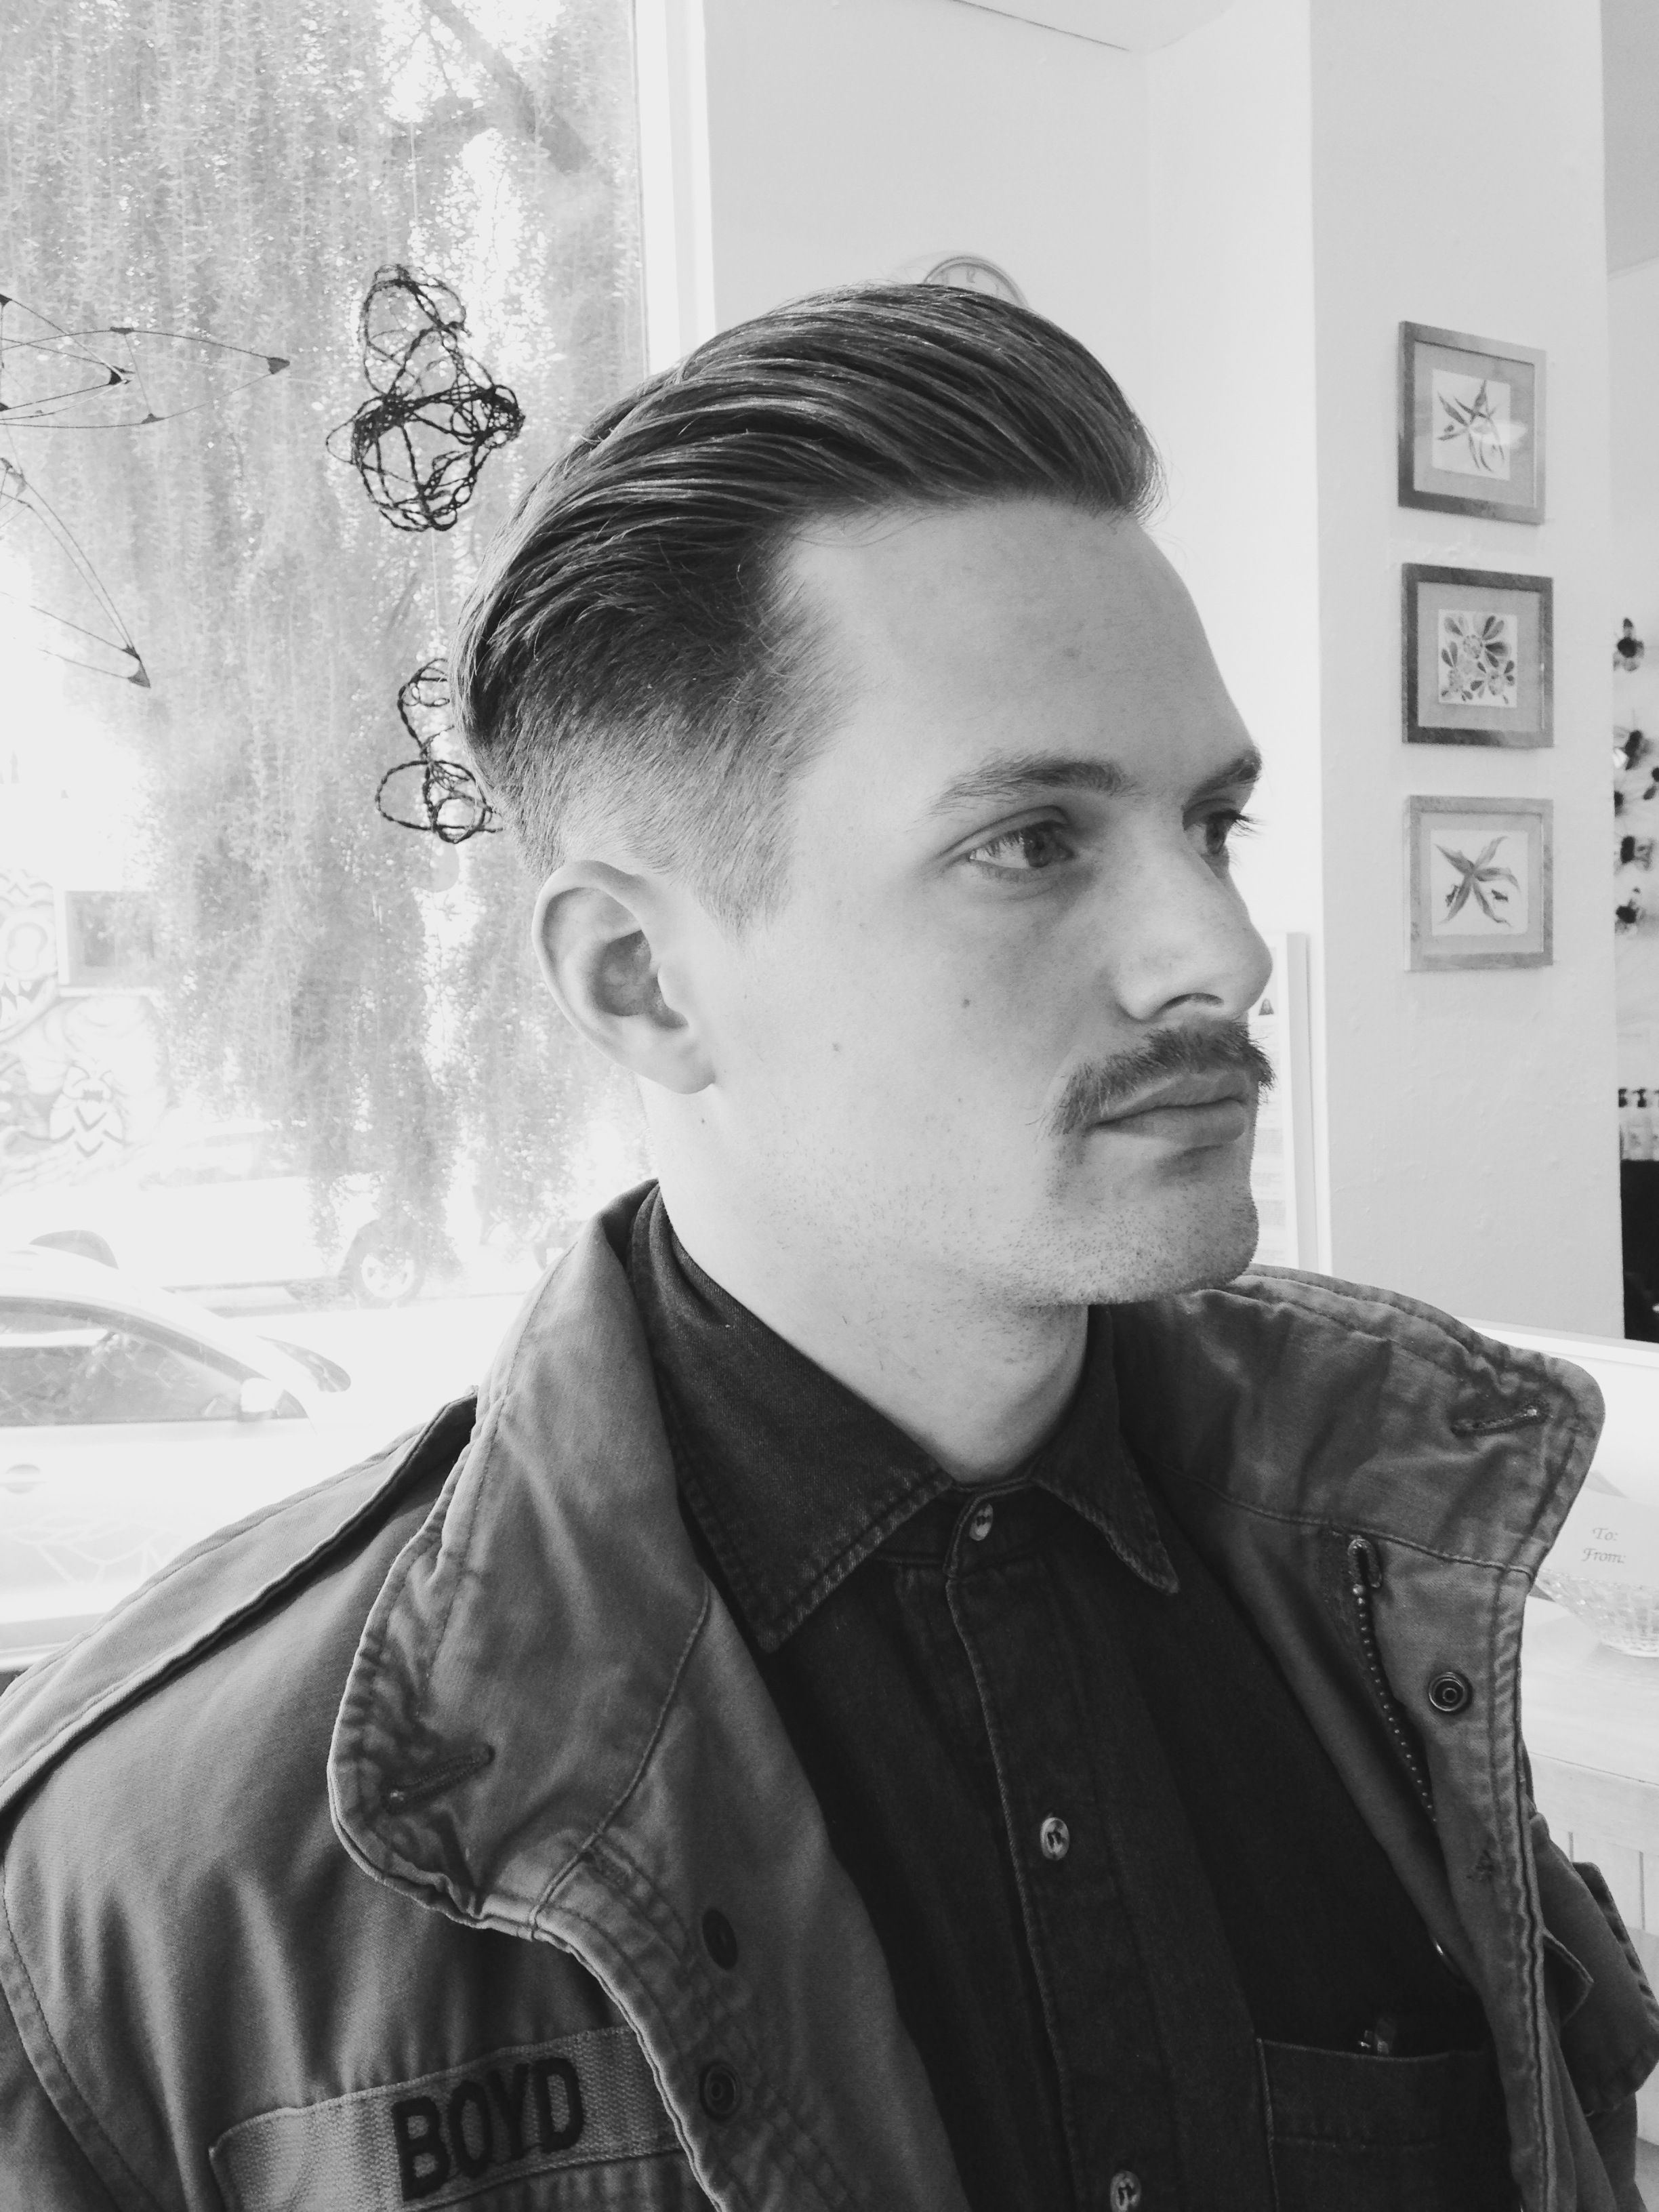 Coiffure Homme Retro Dapper Mens Haircut By Seana Edo Salon My Style